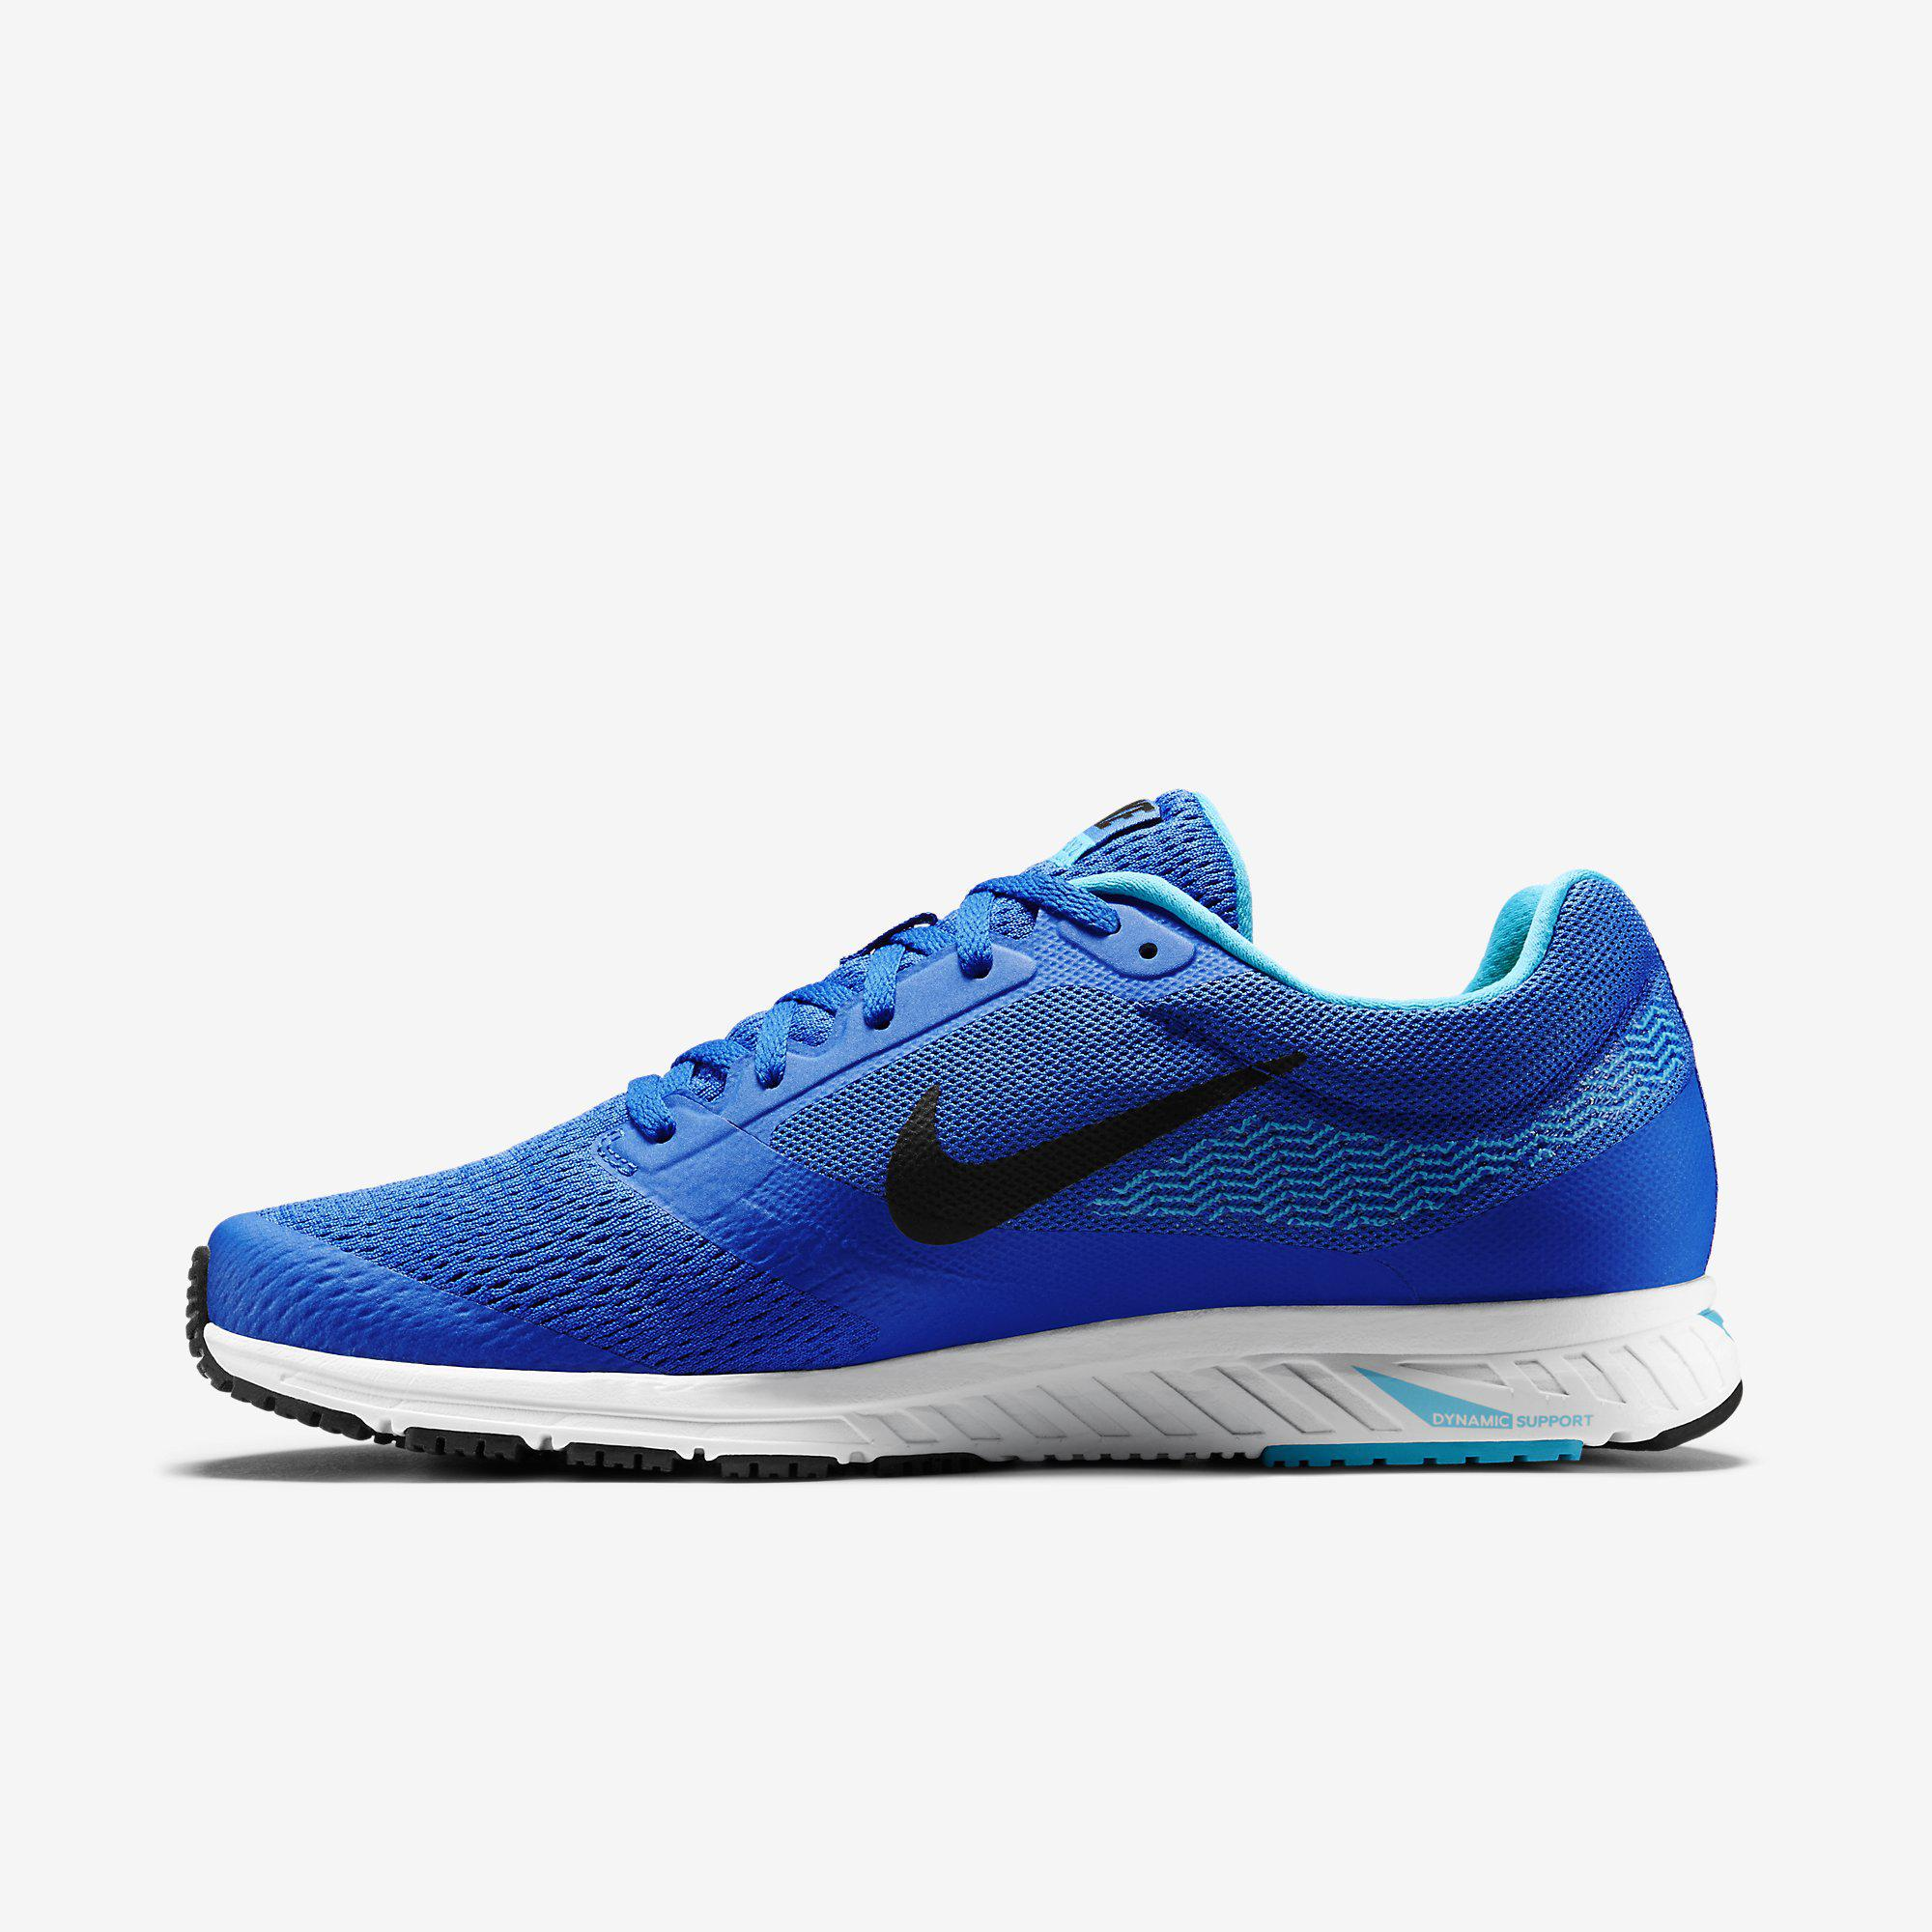 Nike Mens Air Zoom Fly 2 Running Shoes - Blue - Tennisnuts.com